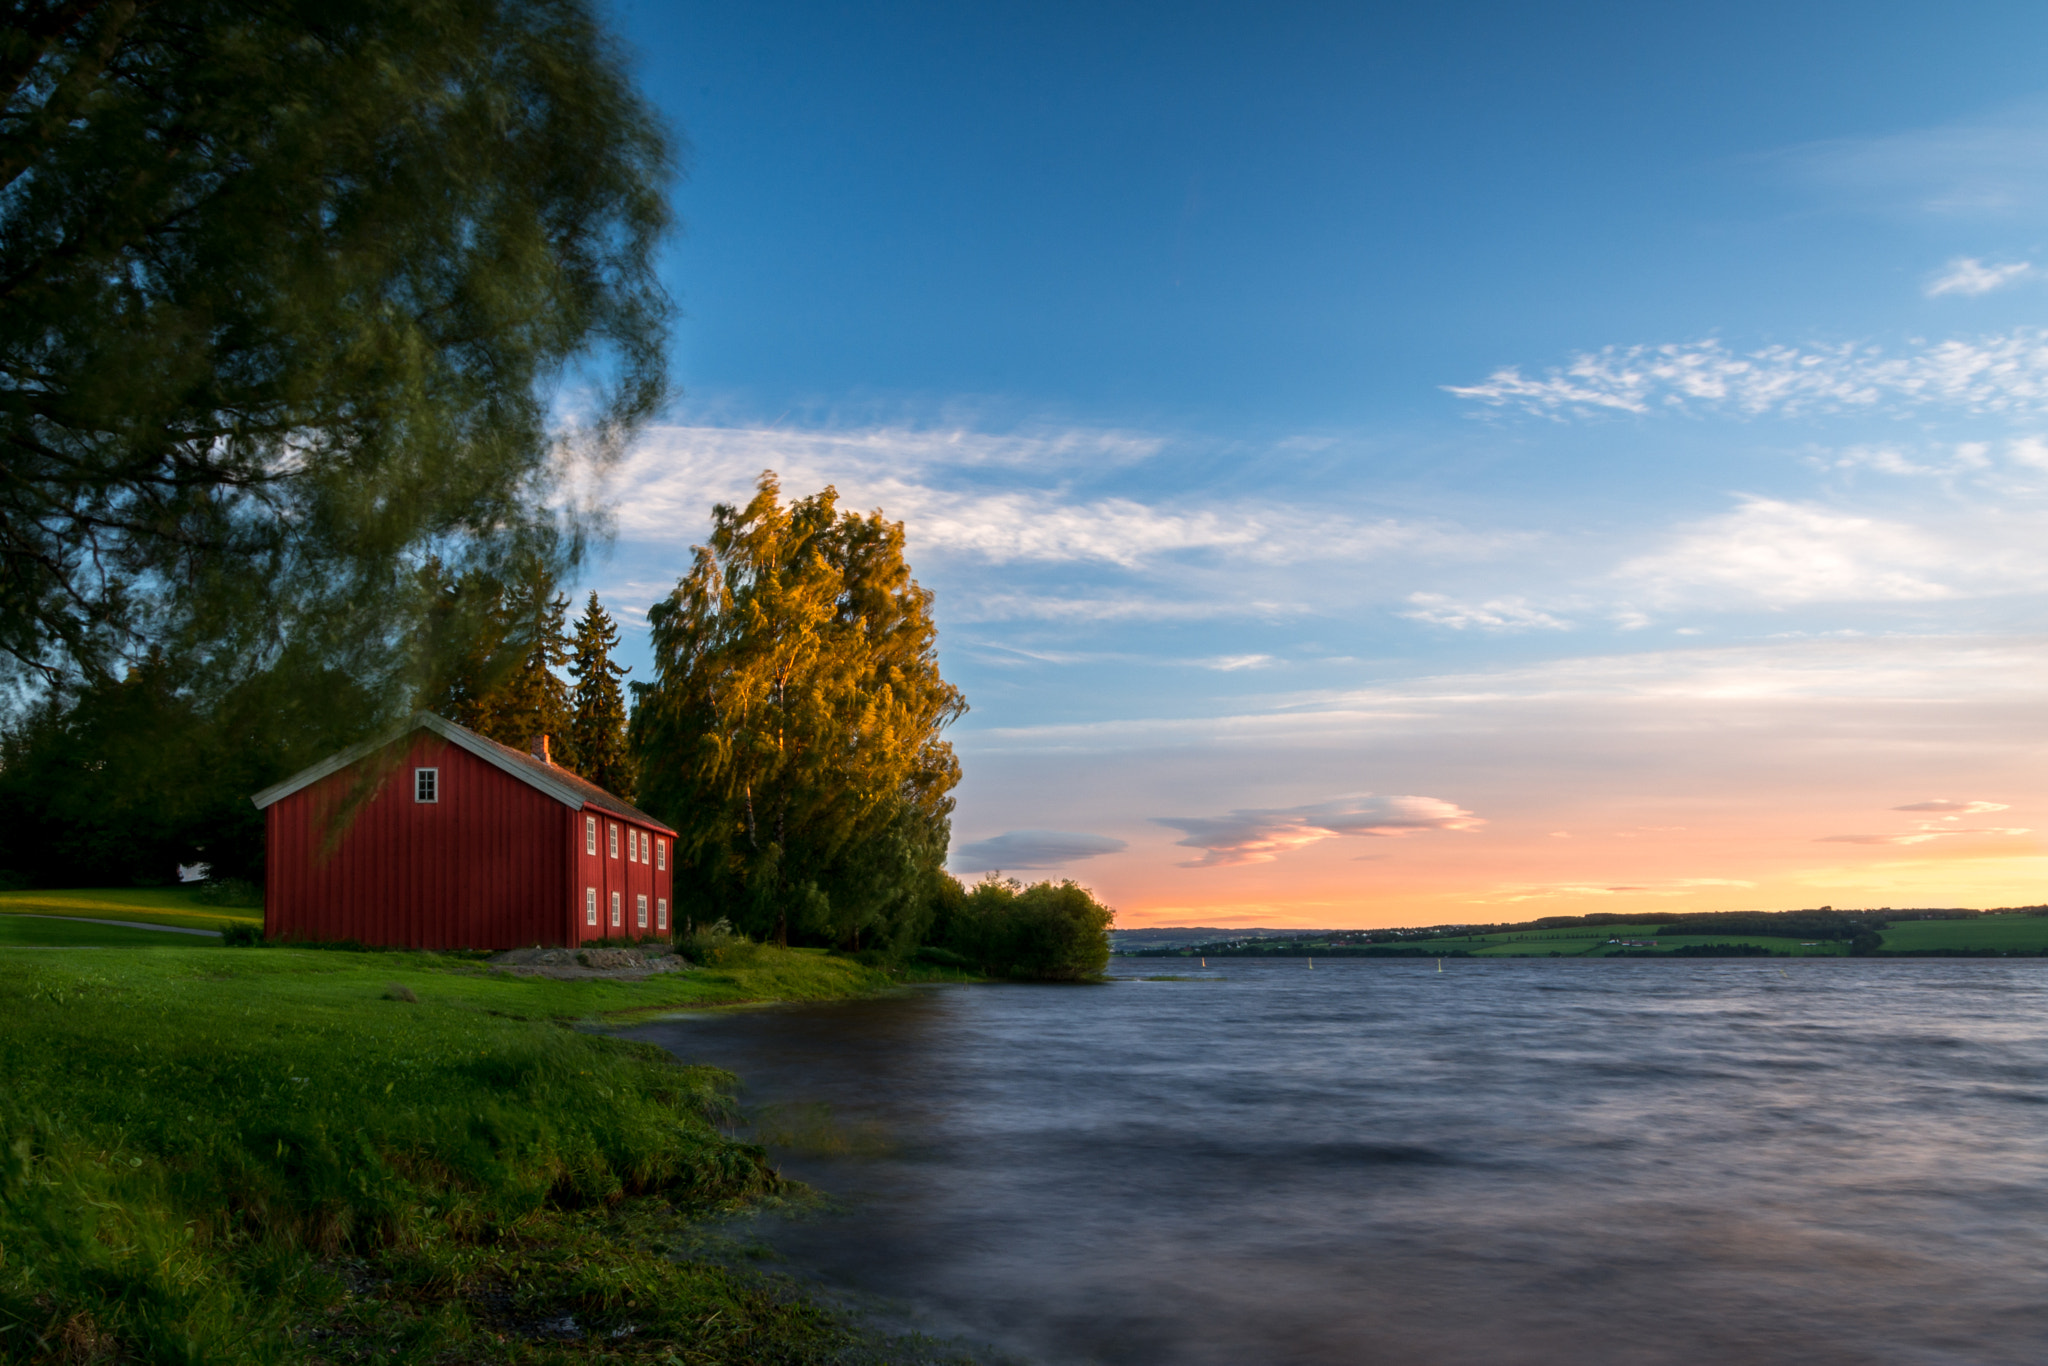 Photograph The red house by Are Pettersen on 500px